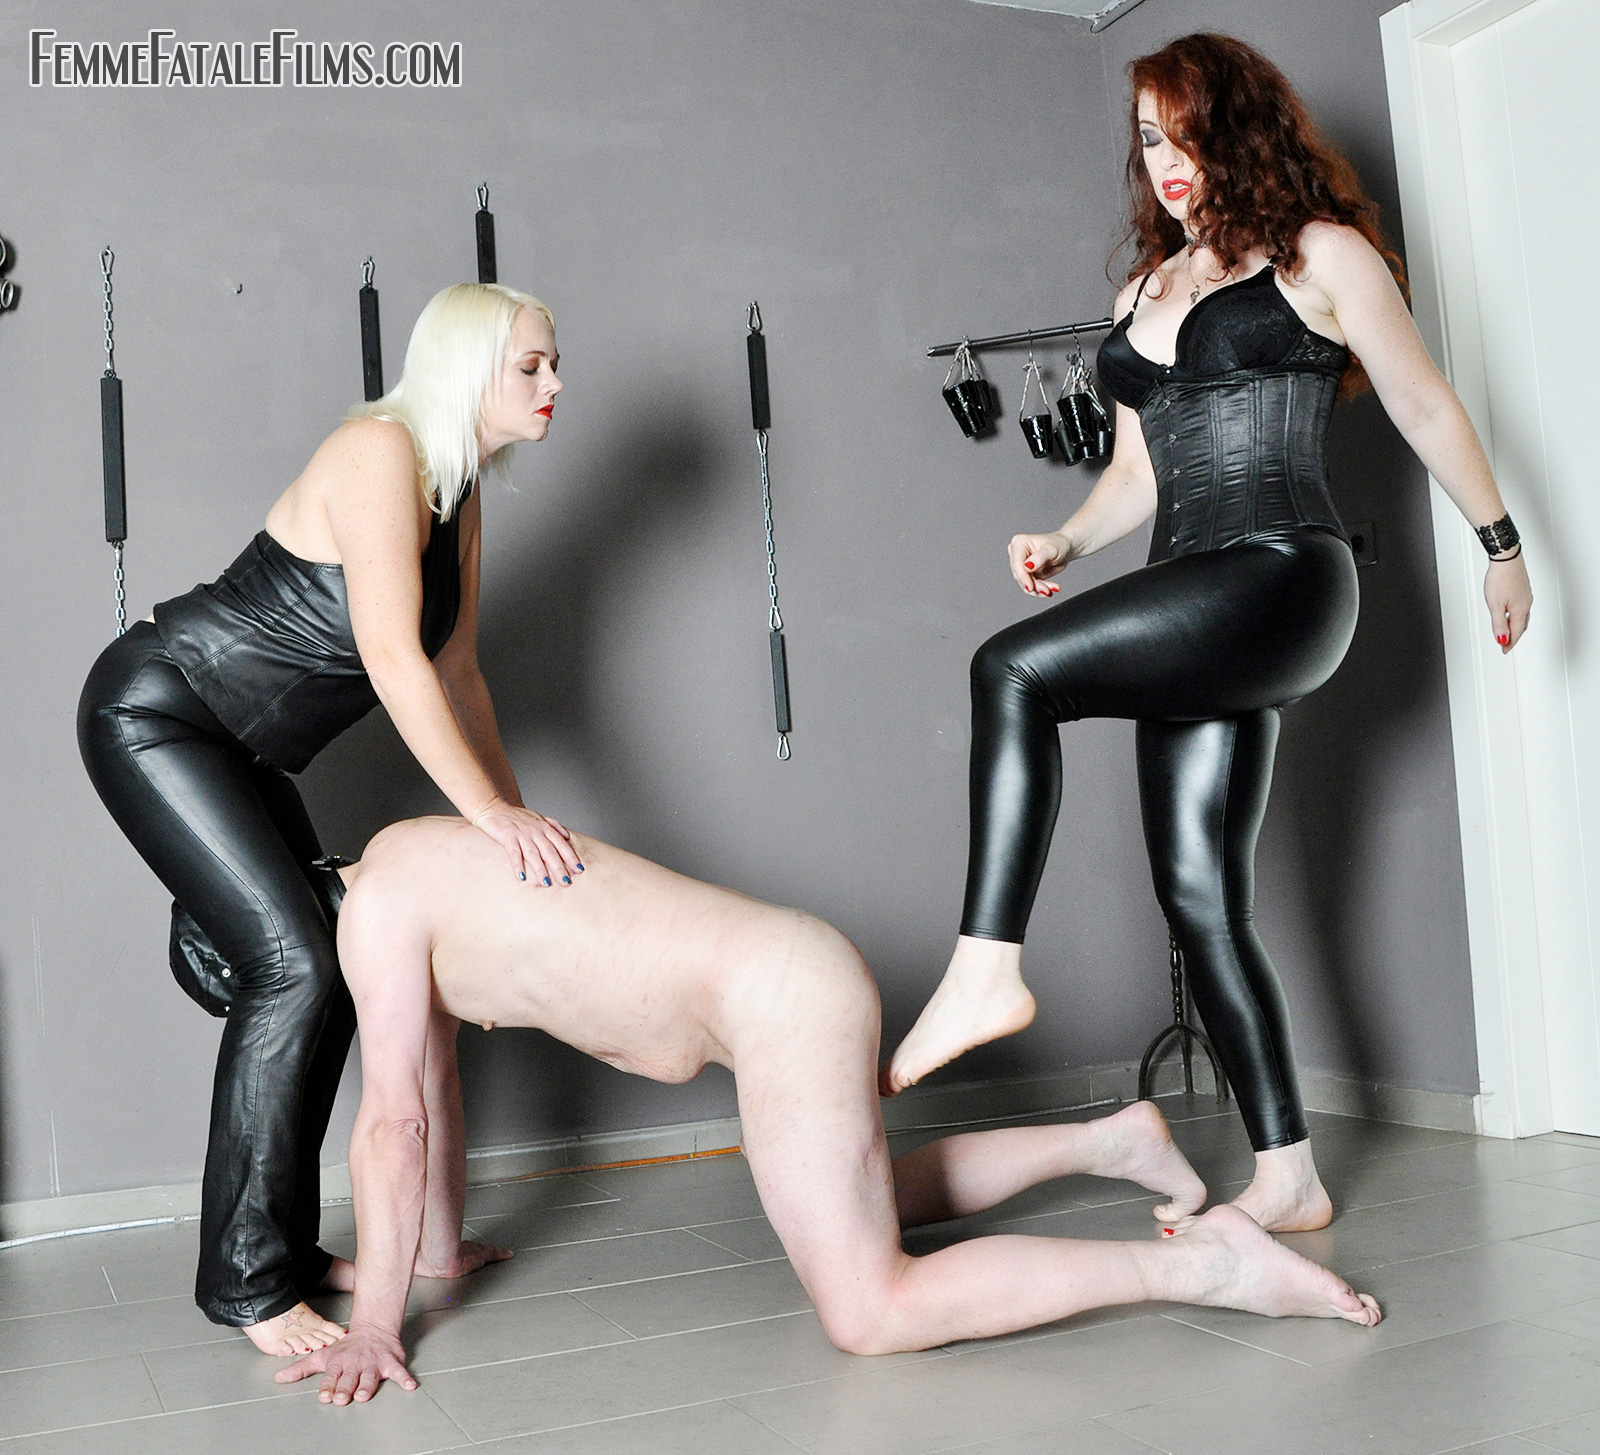 an extreme ball crushing experience with Mistress Heather and Mistress Lady